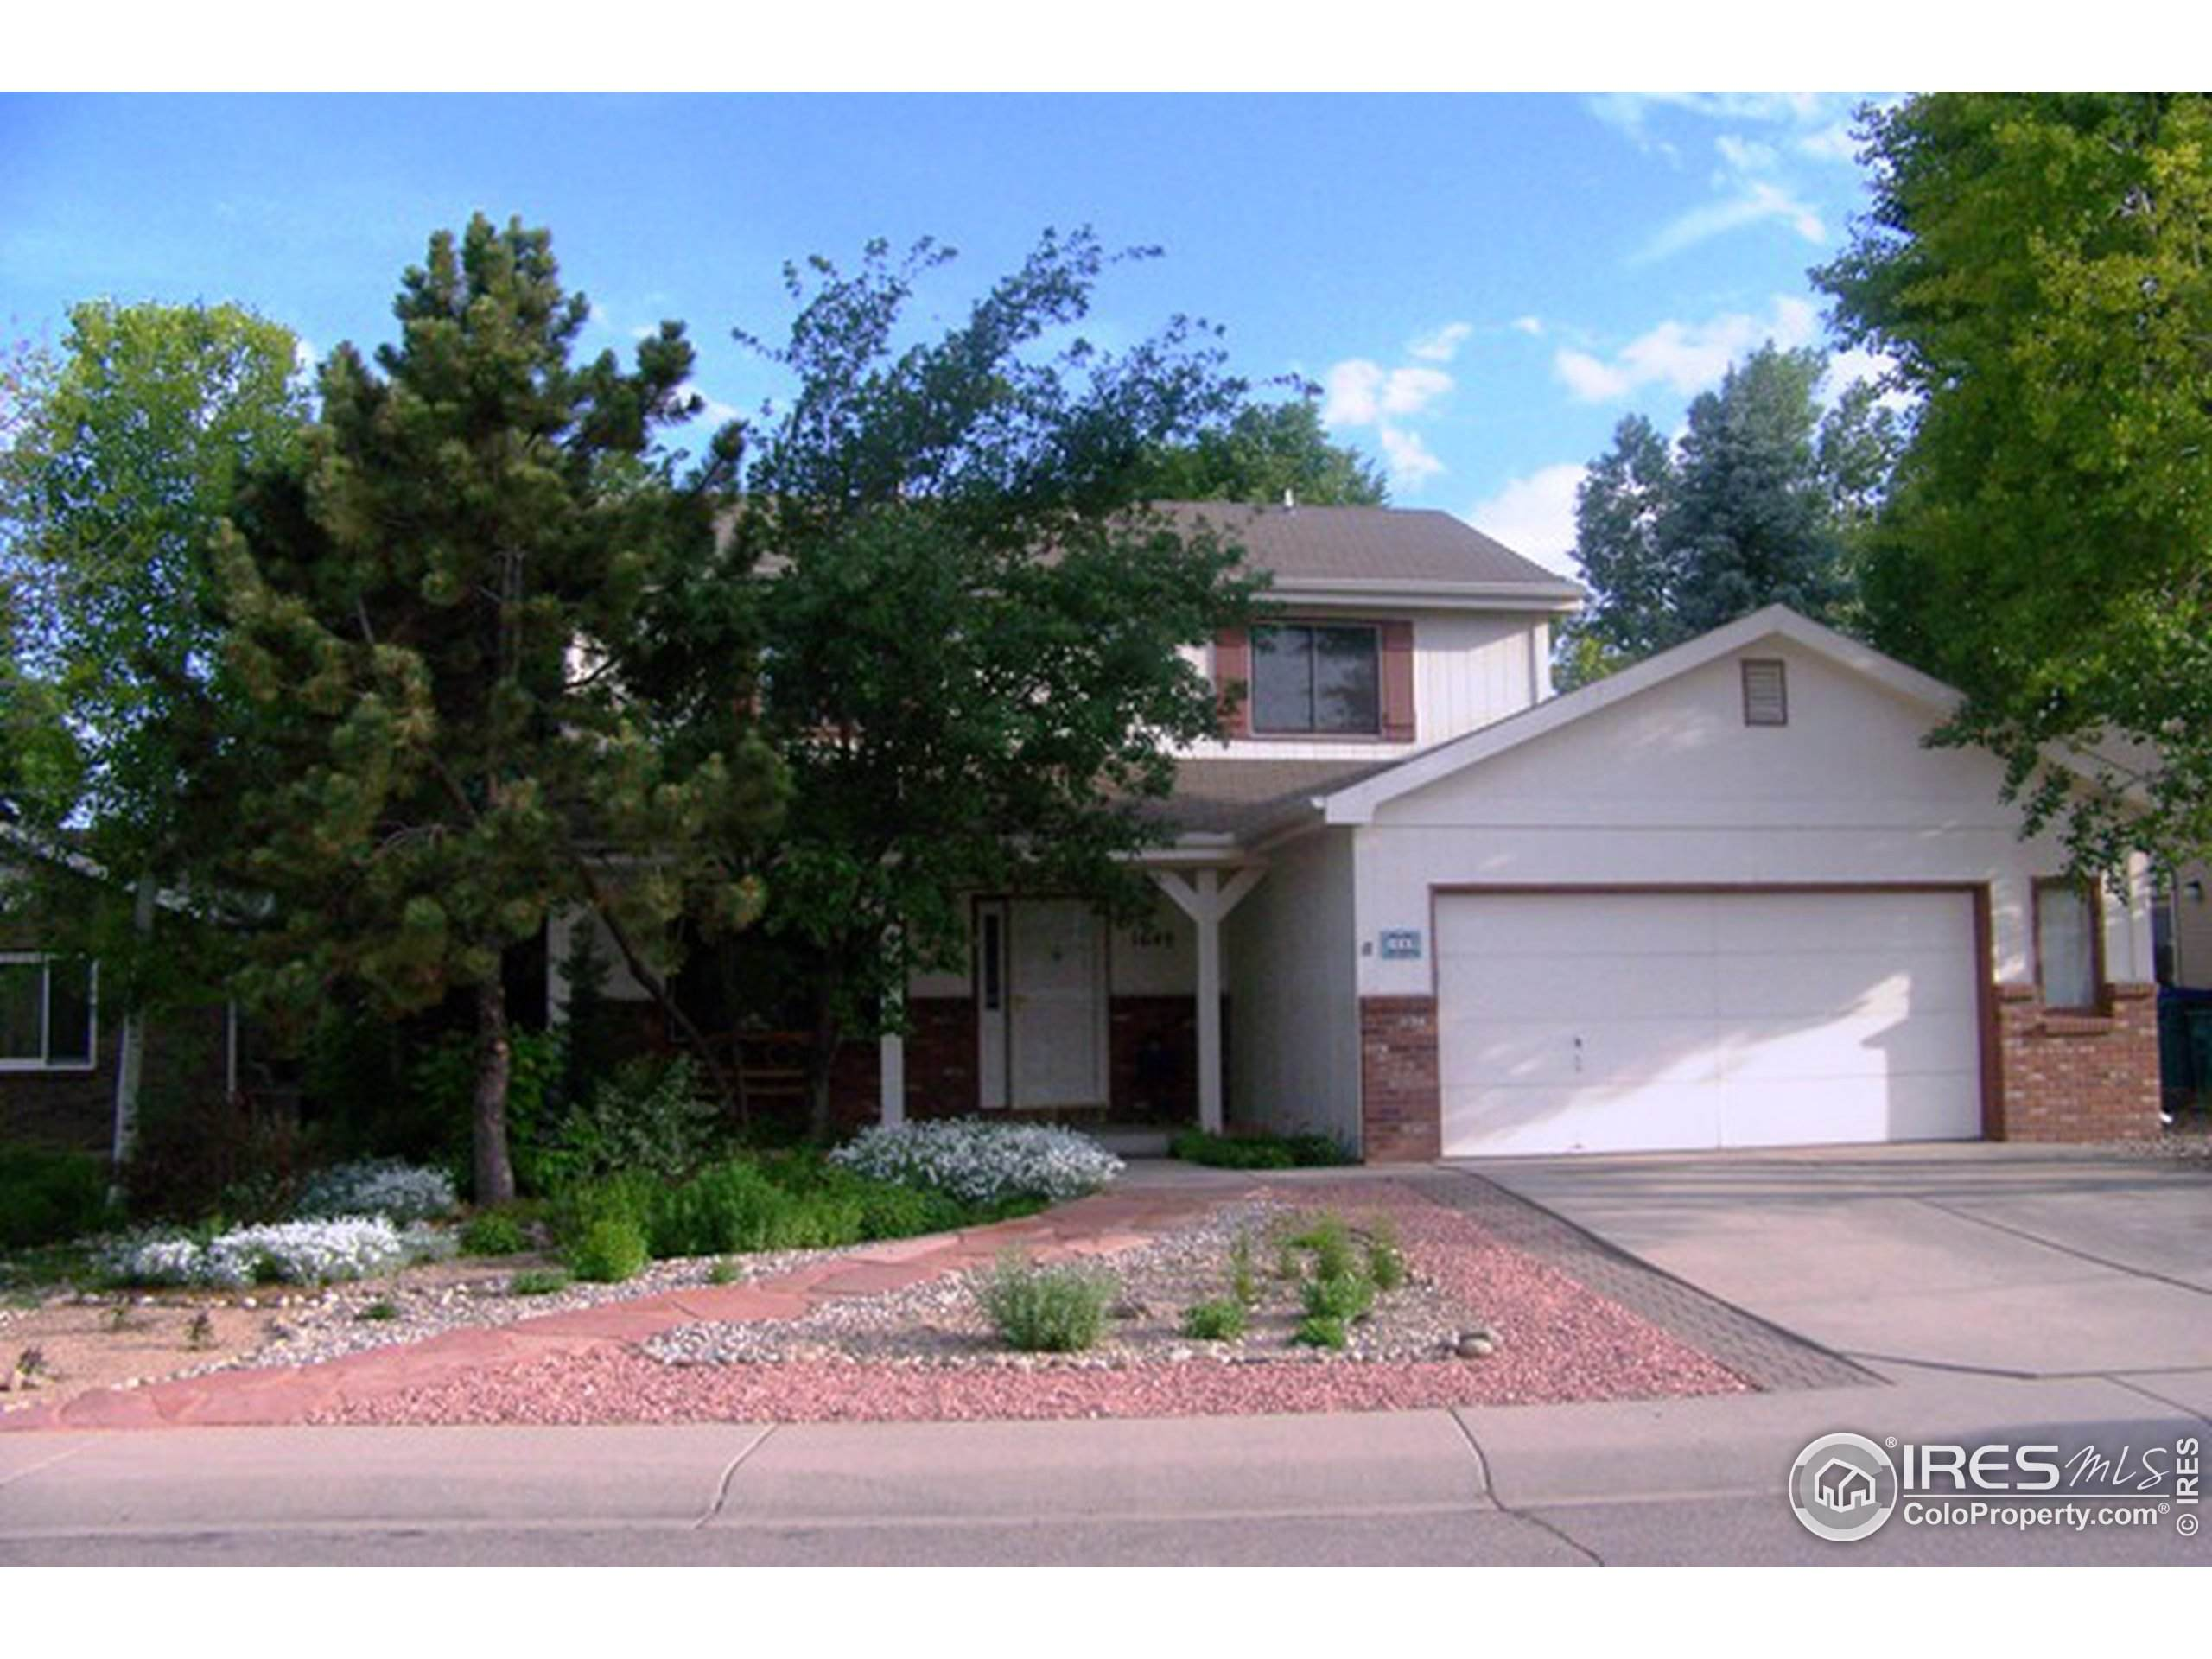 3401 Arapahoe Ave #204, Boulder, CO 80303 (MLS #931286) :: Keller Williams Realty